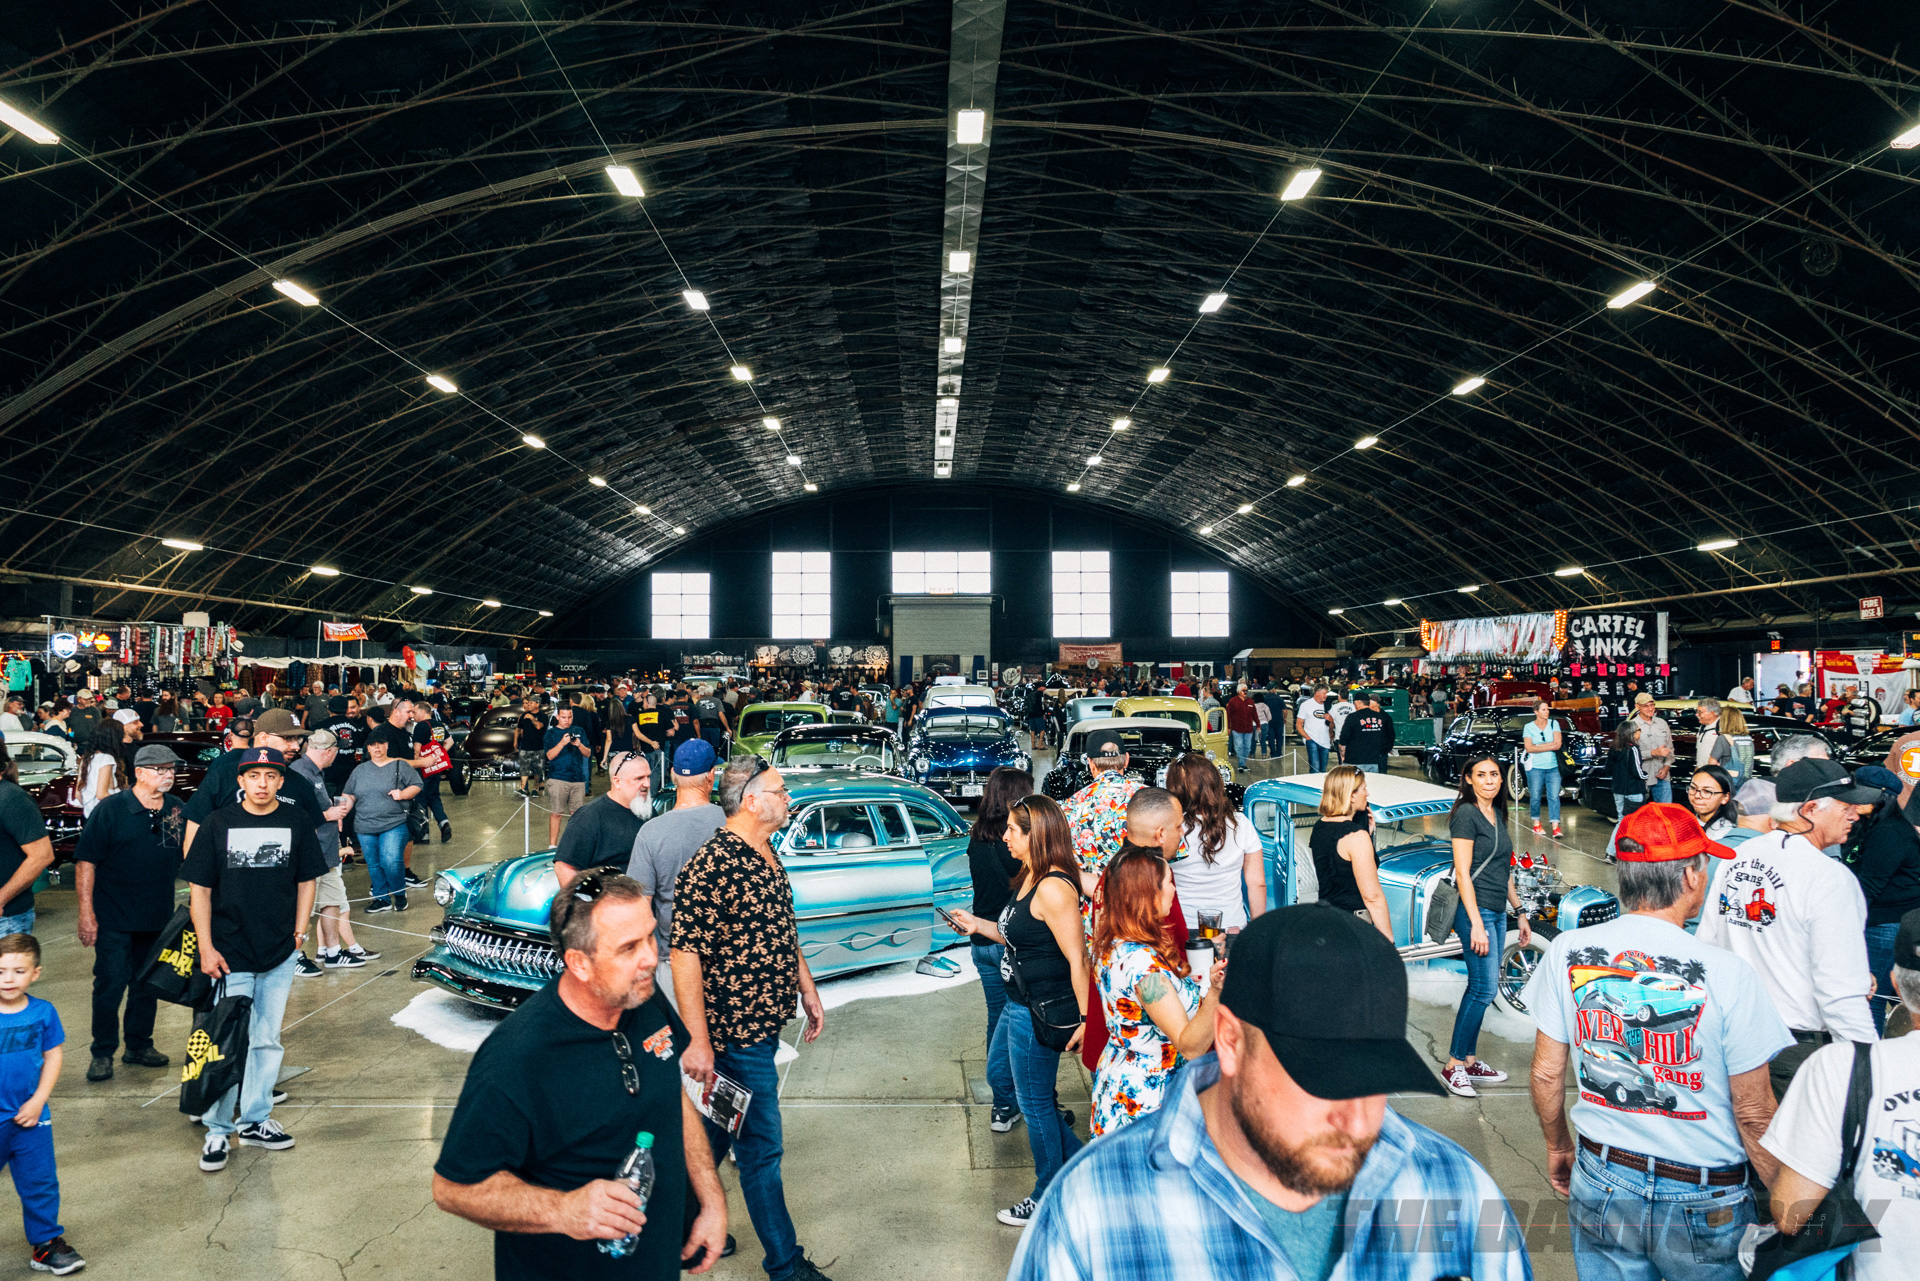 the crowd and cars on display at the 2019 Grand National Roadster Show 70th Anniversary